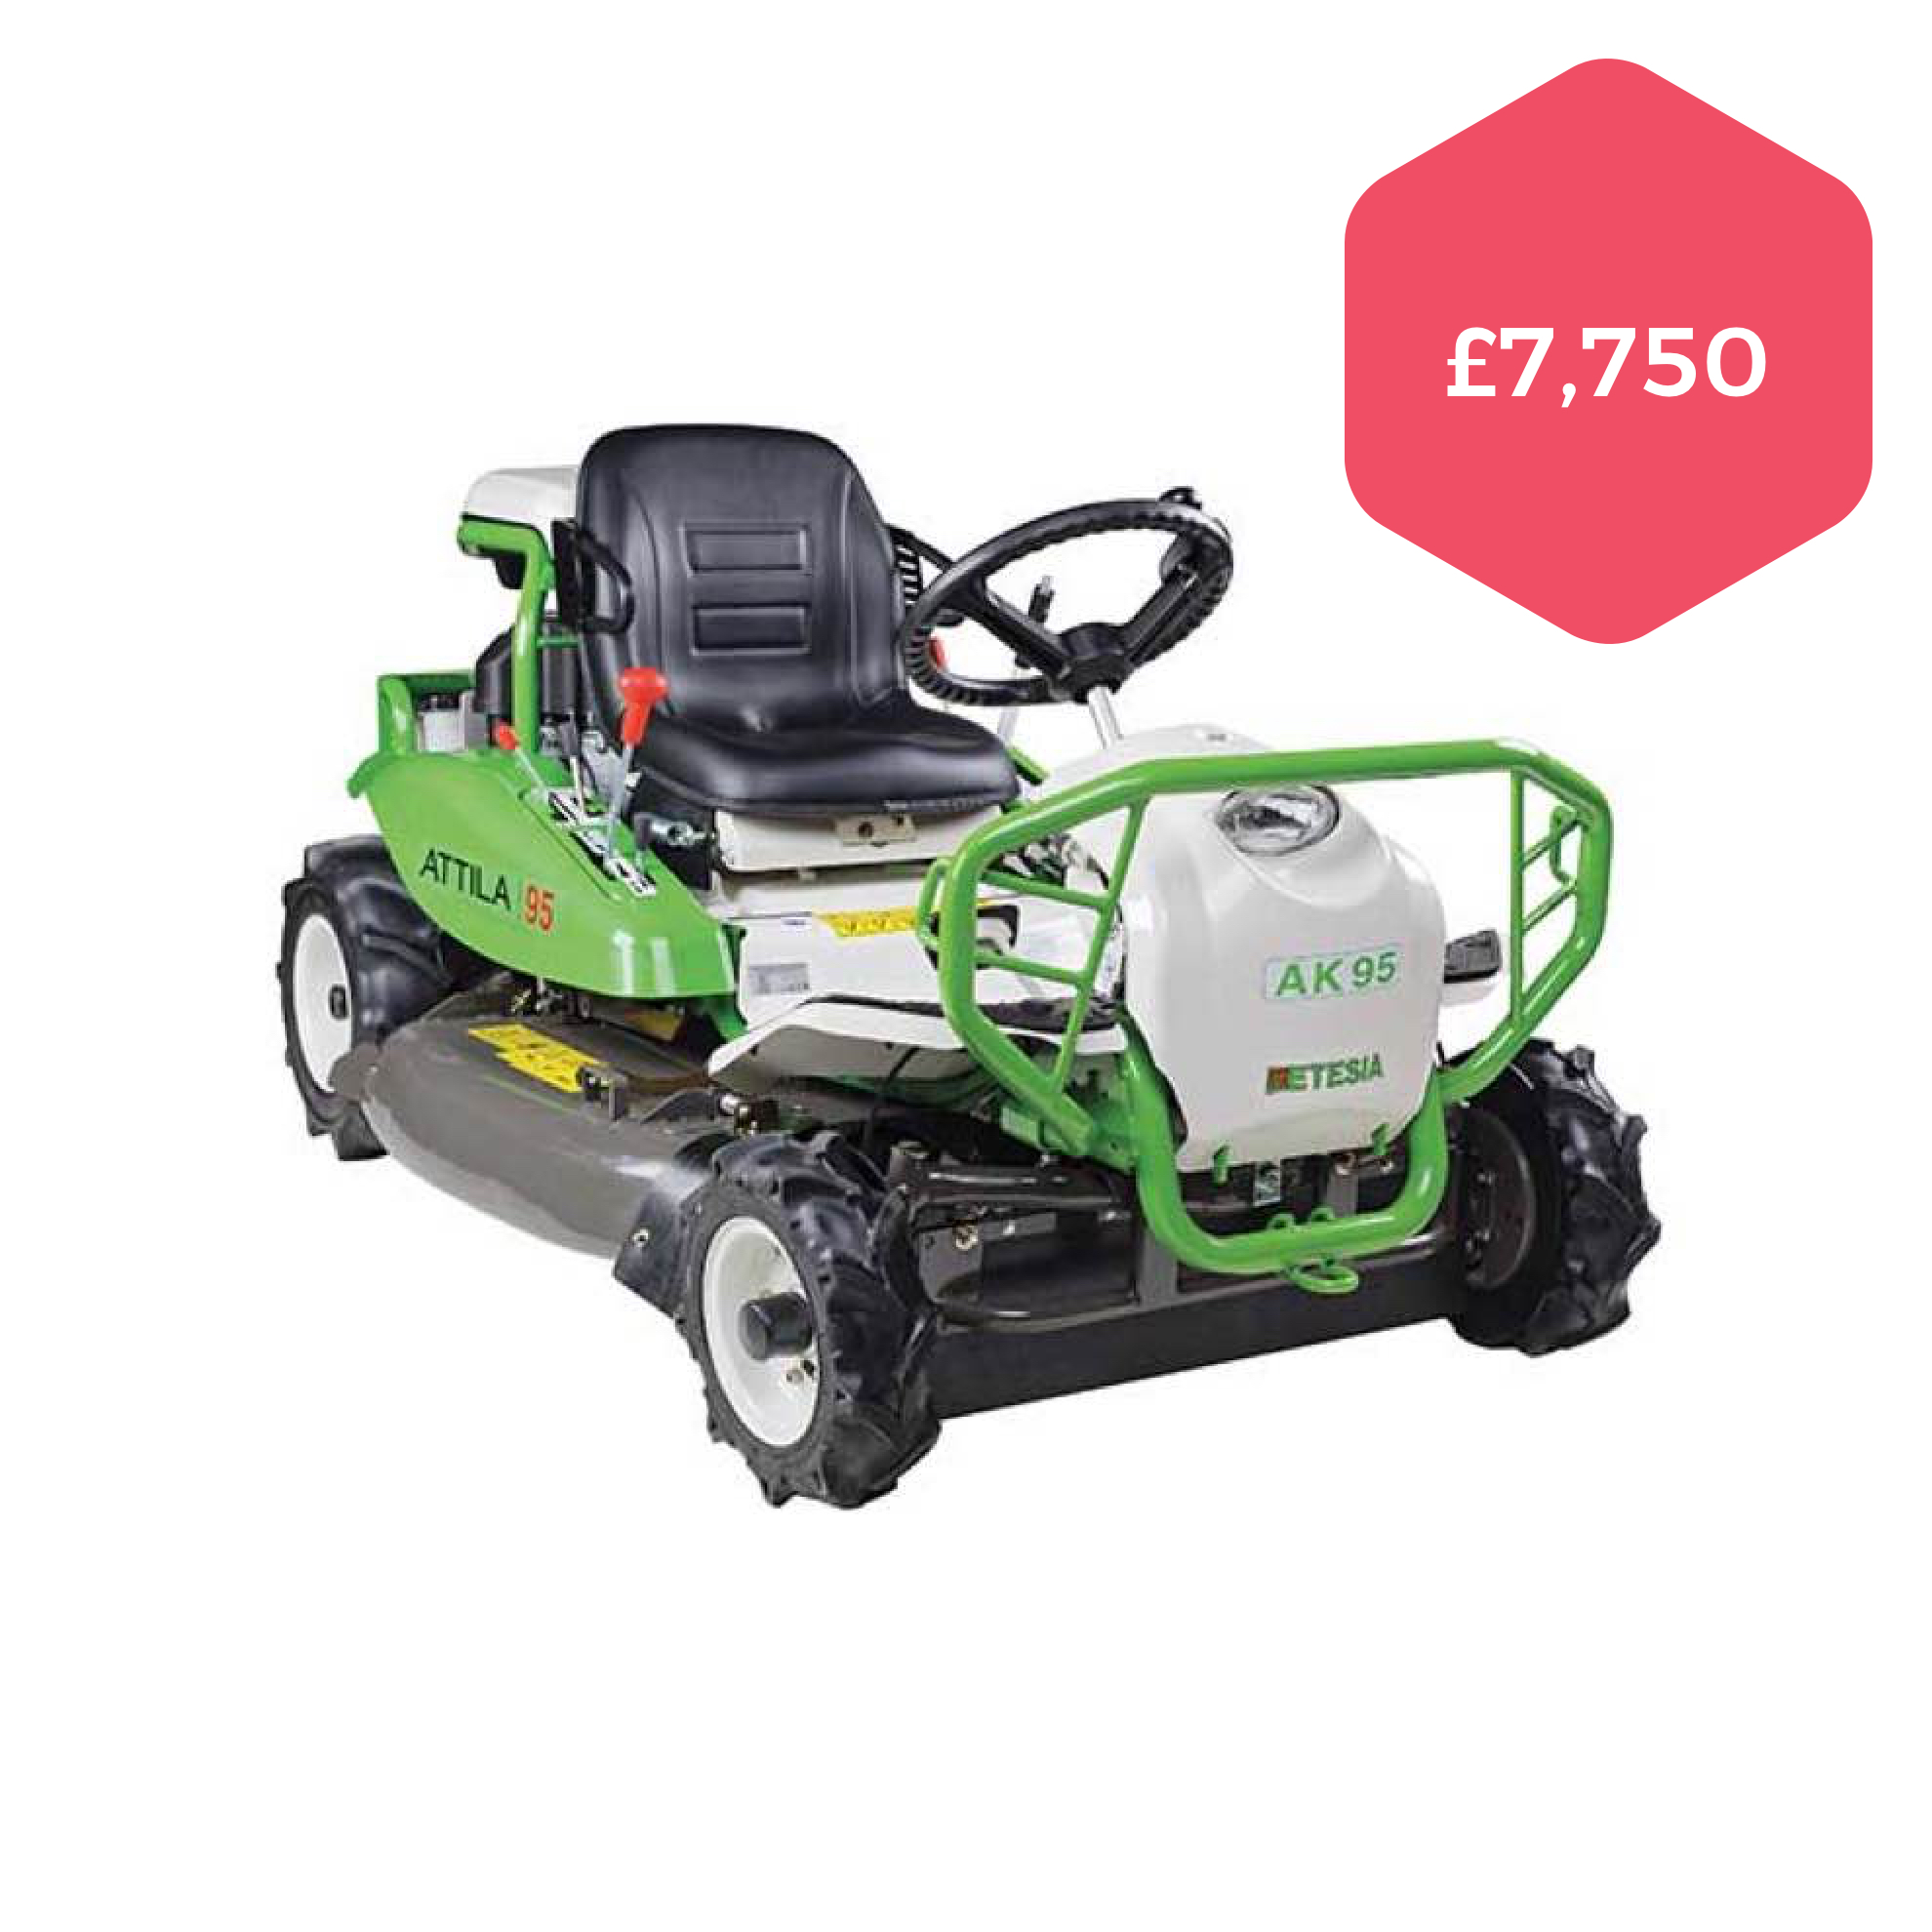 Etesia Attila AK95 Ride-on Mower